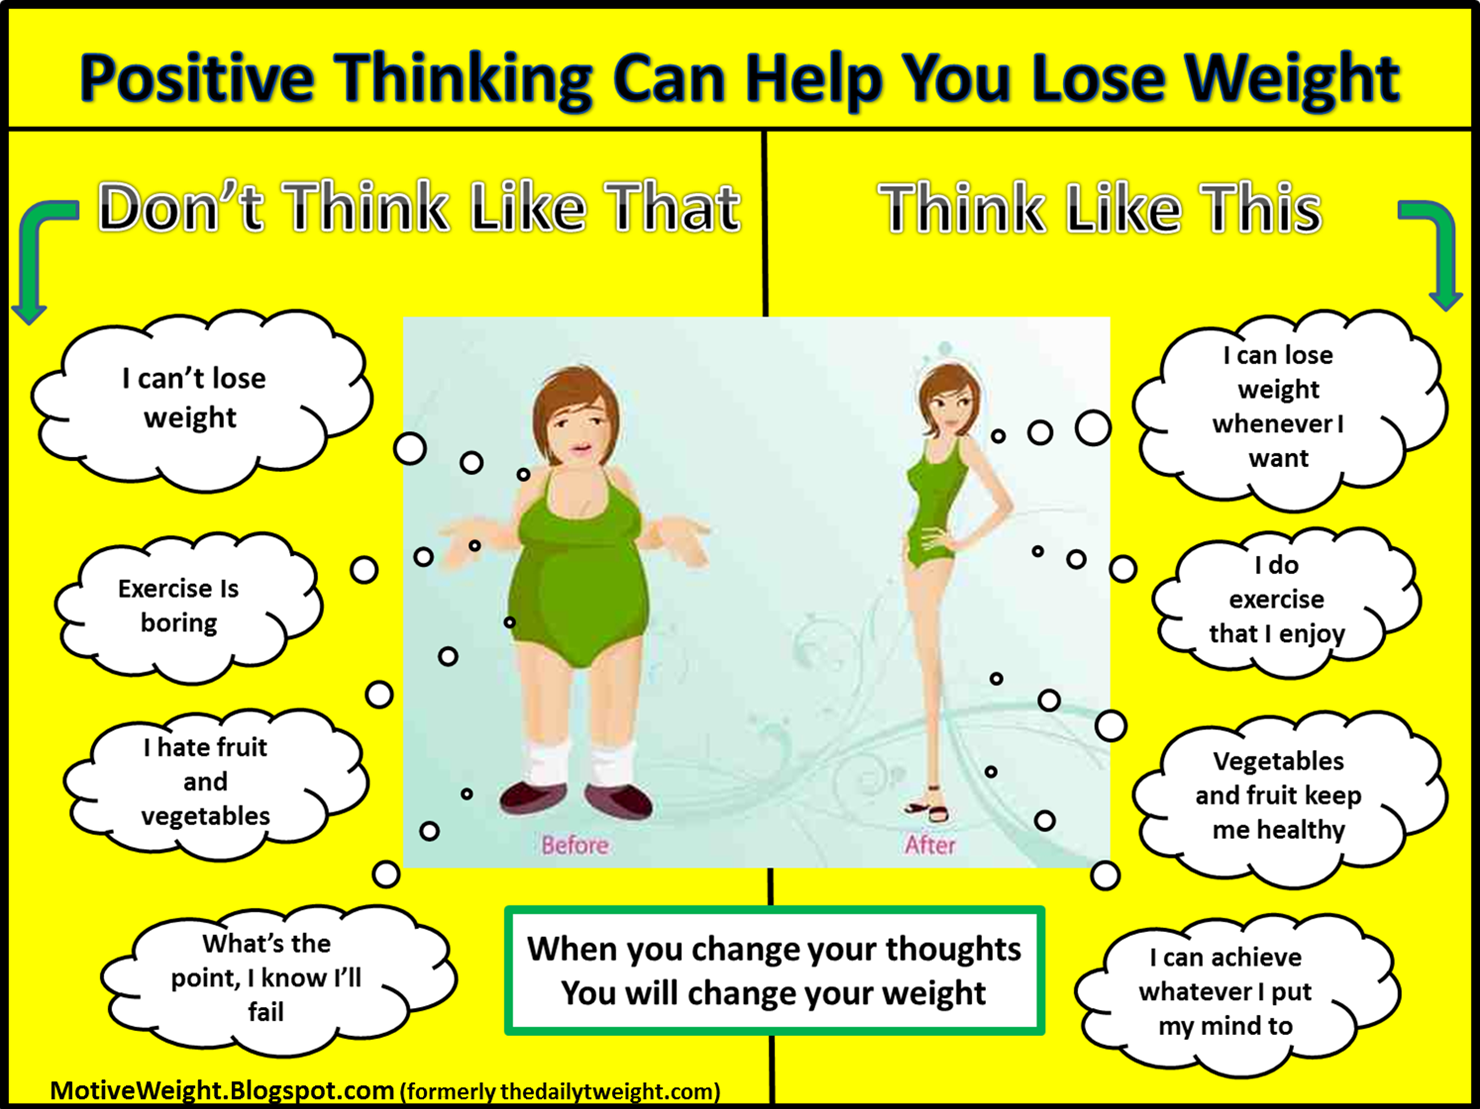 Losing Weight Quotes Motiveweight Positive Thinking Can Help You Lose Weight